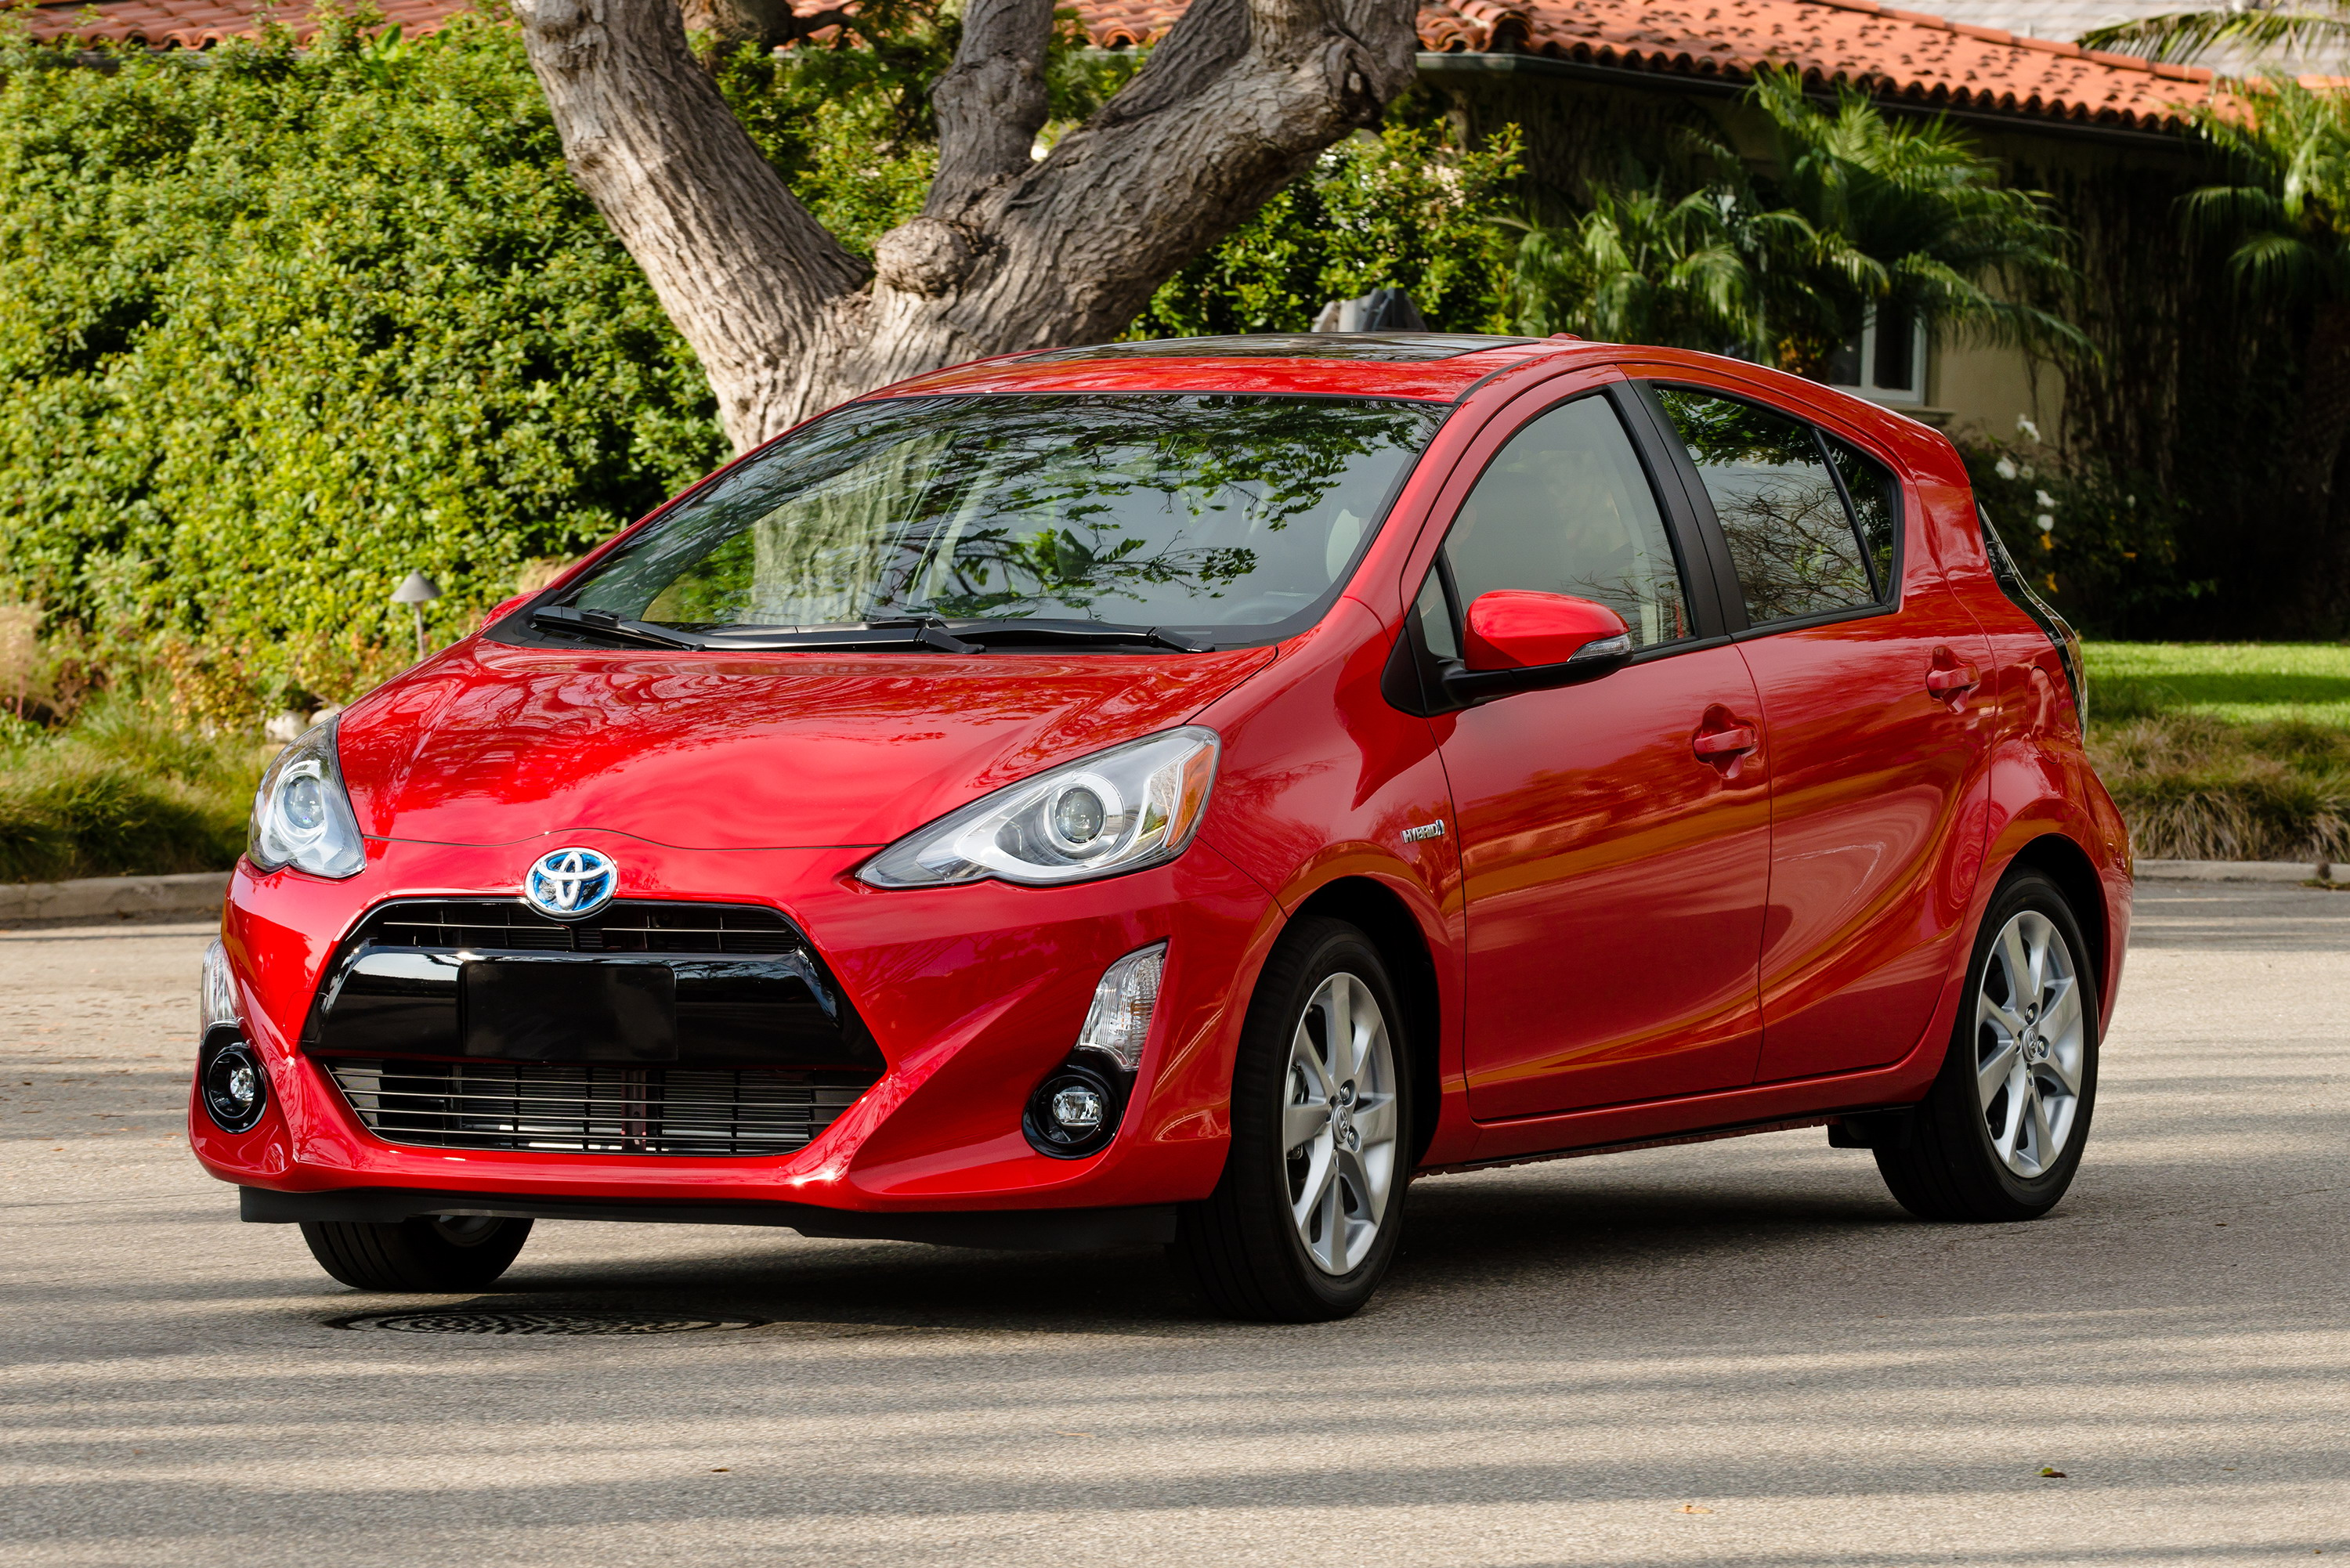 2015 toyota prius c review top speed. Black Bedroom Furniture Sets. Home Design Ideas